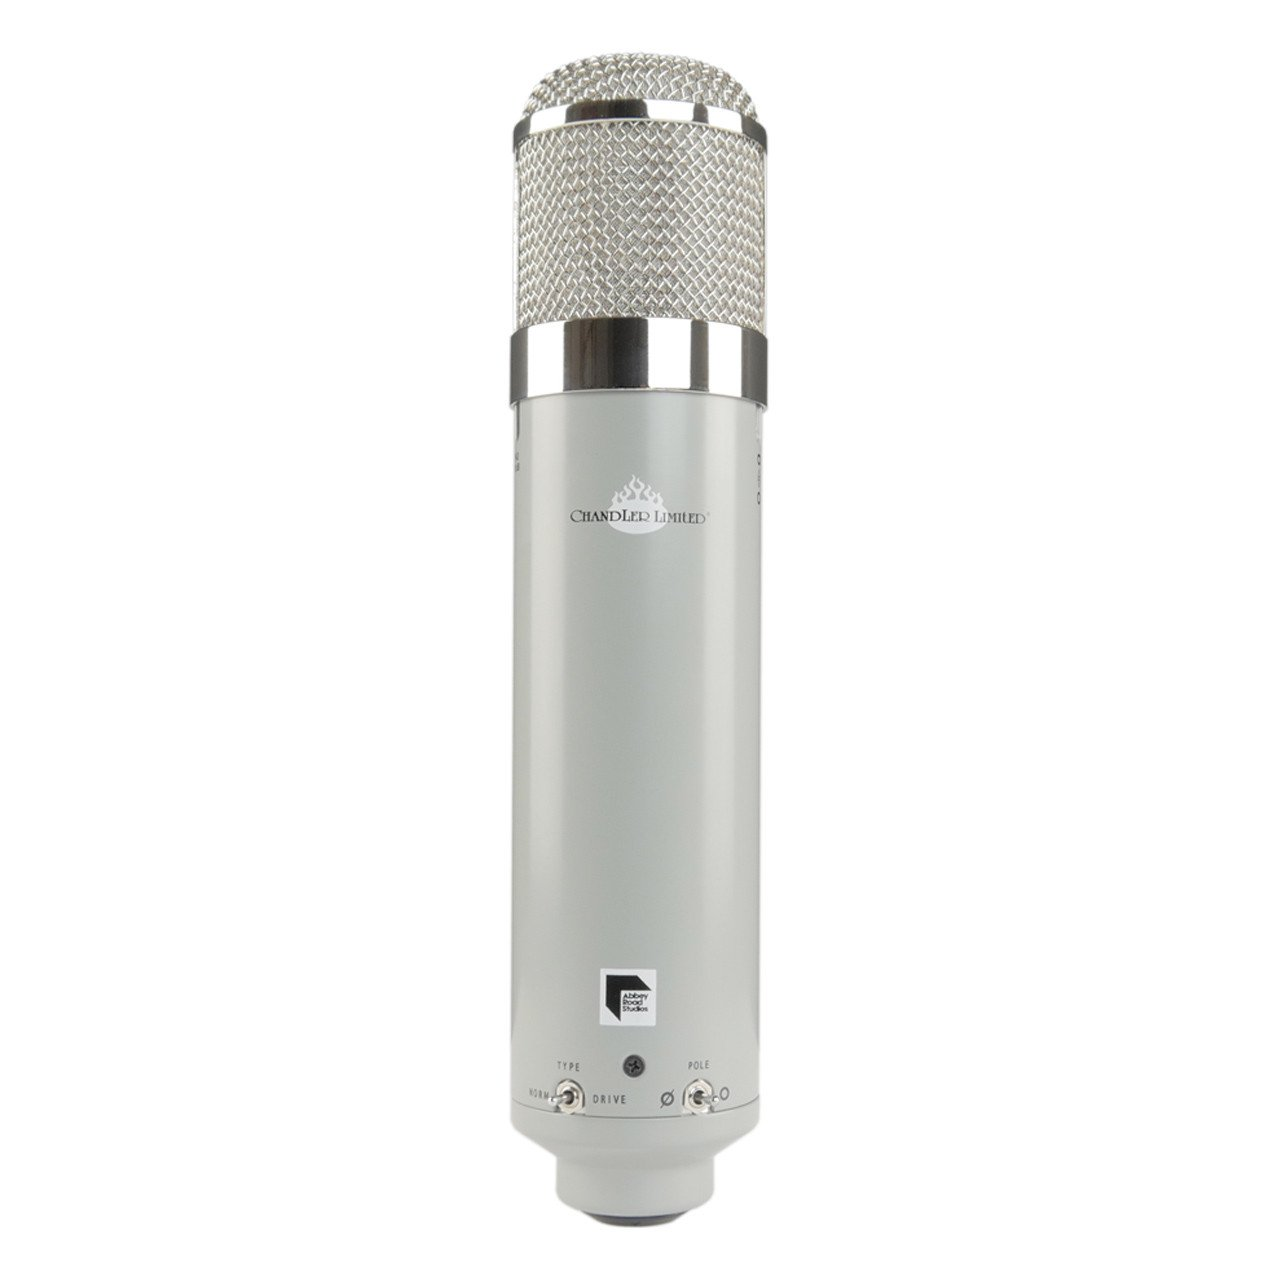 Tube Microphones - Chandler Limited REDD Microphone - Tube Condenser Microphone & Preamp